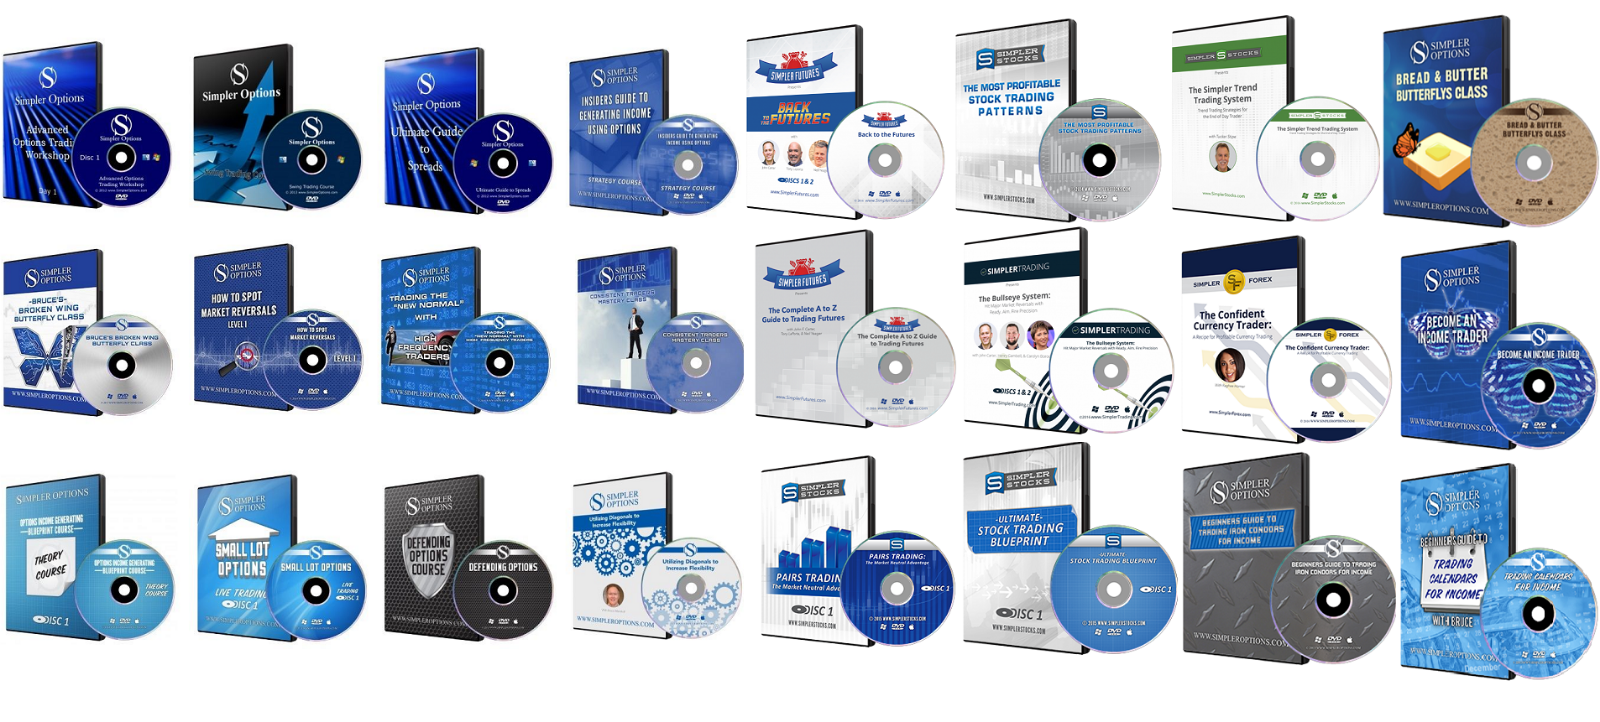 SIMPLER OPTIONS – 24 COURSES MEGAPACK – Trading, Forex and Stocks 24 in 1 Bundle